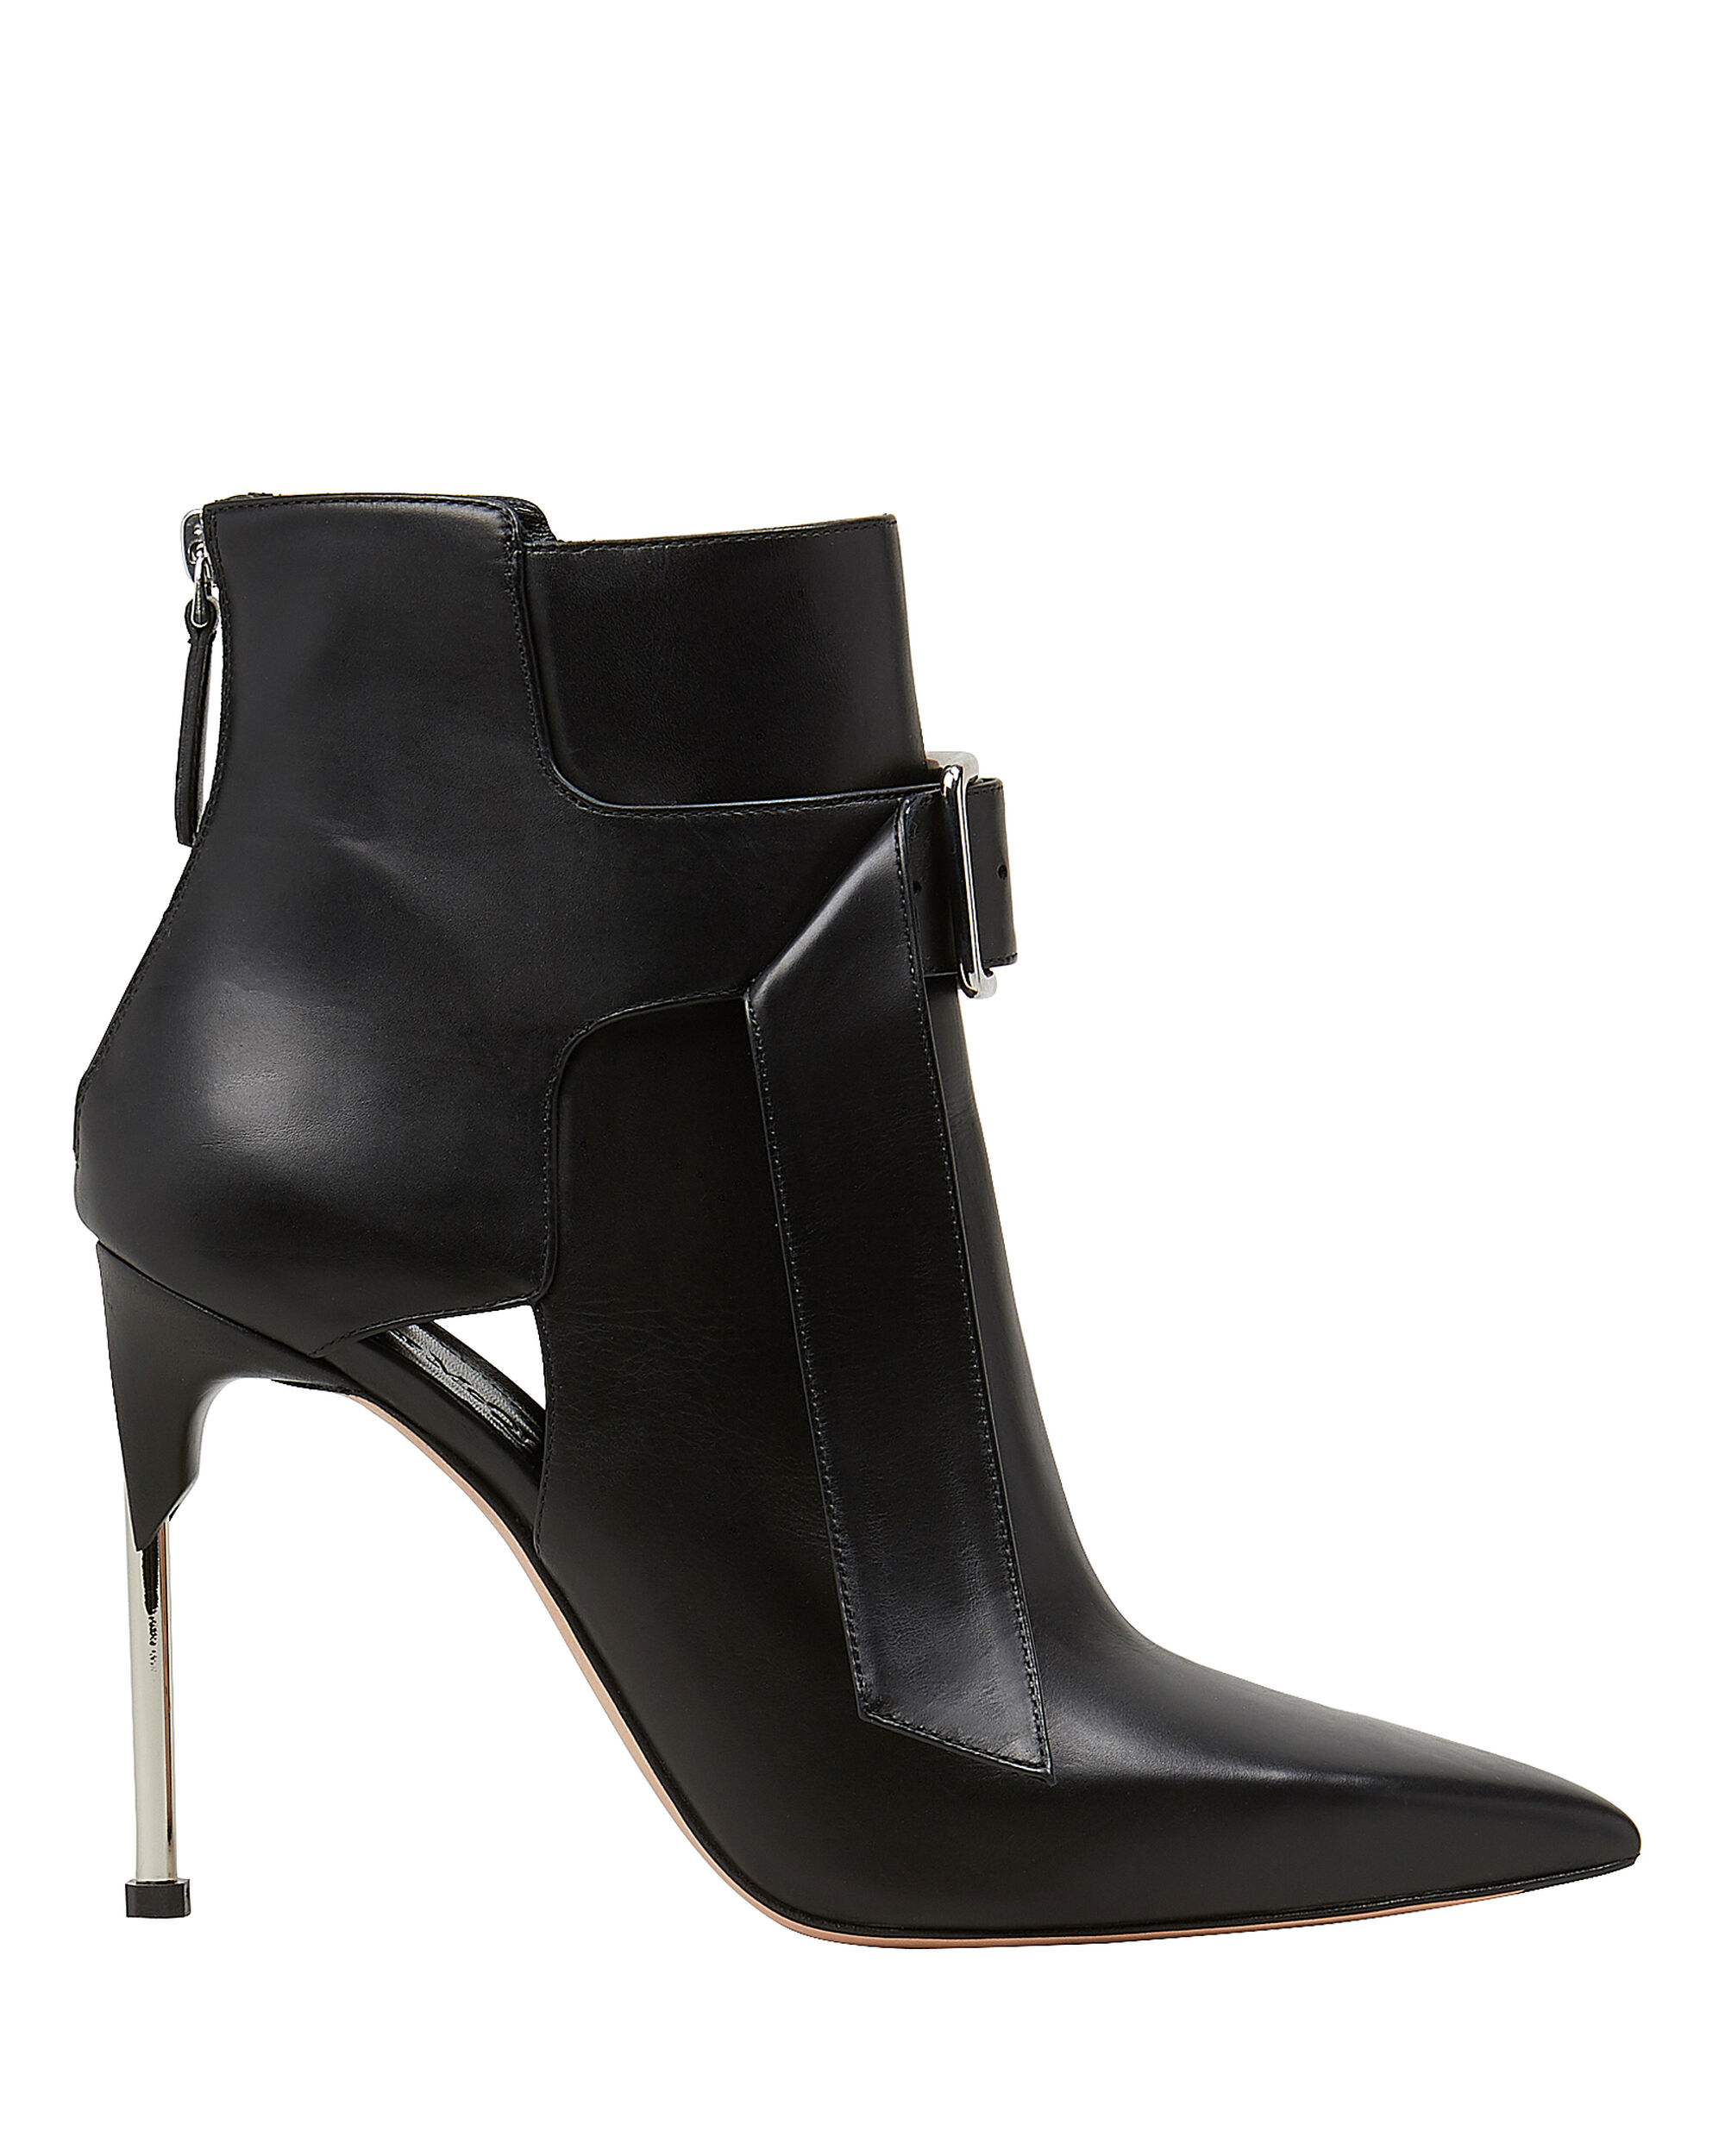 Buckled Black Leather Booties, BLACK, hi-res